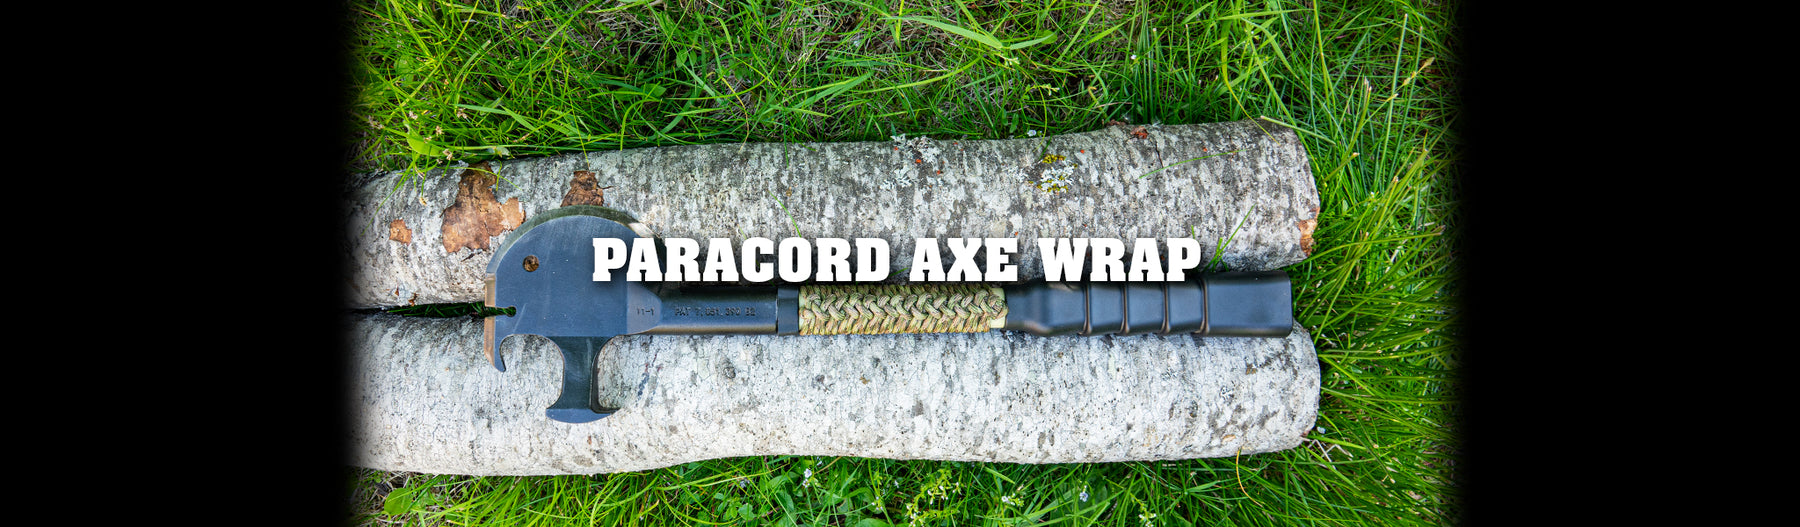 Paracord Axe Wrap